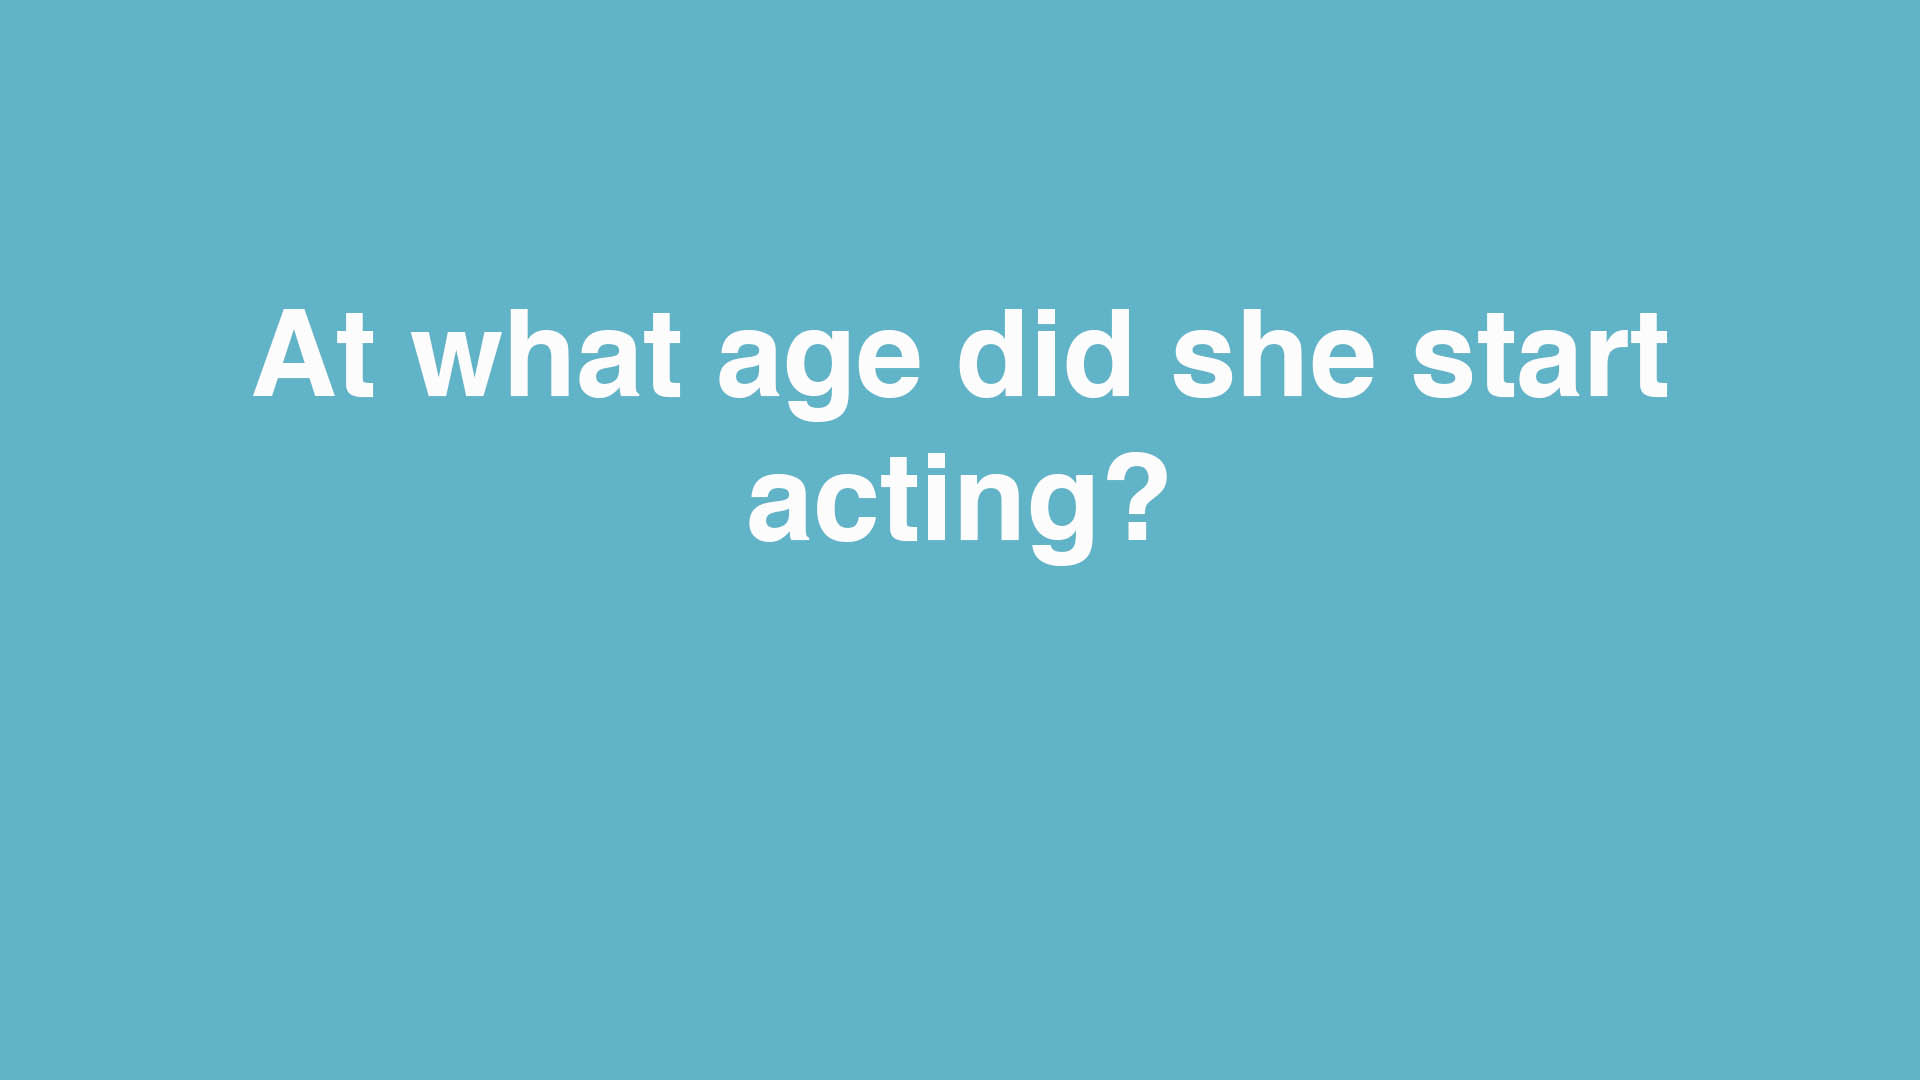 At what age did she start acting?